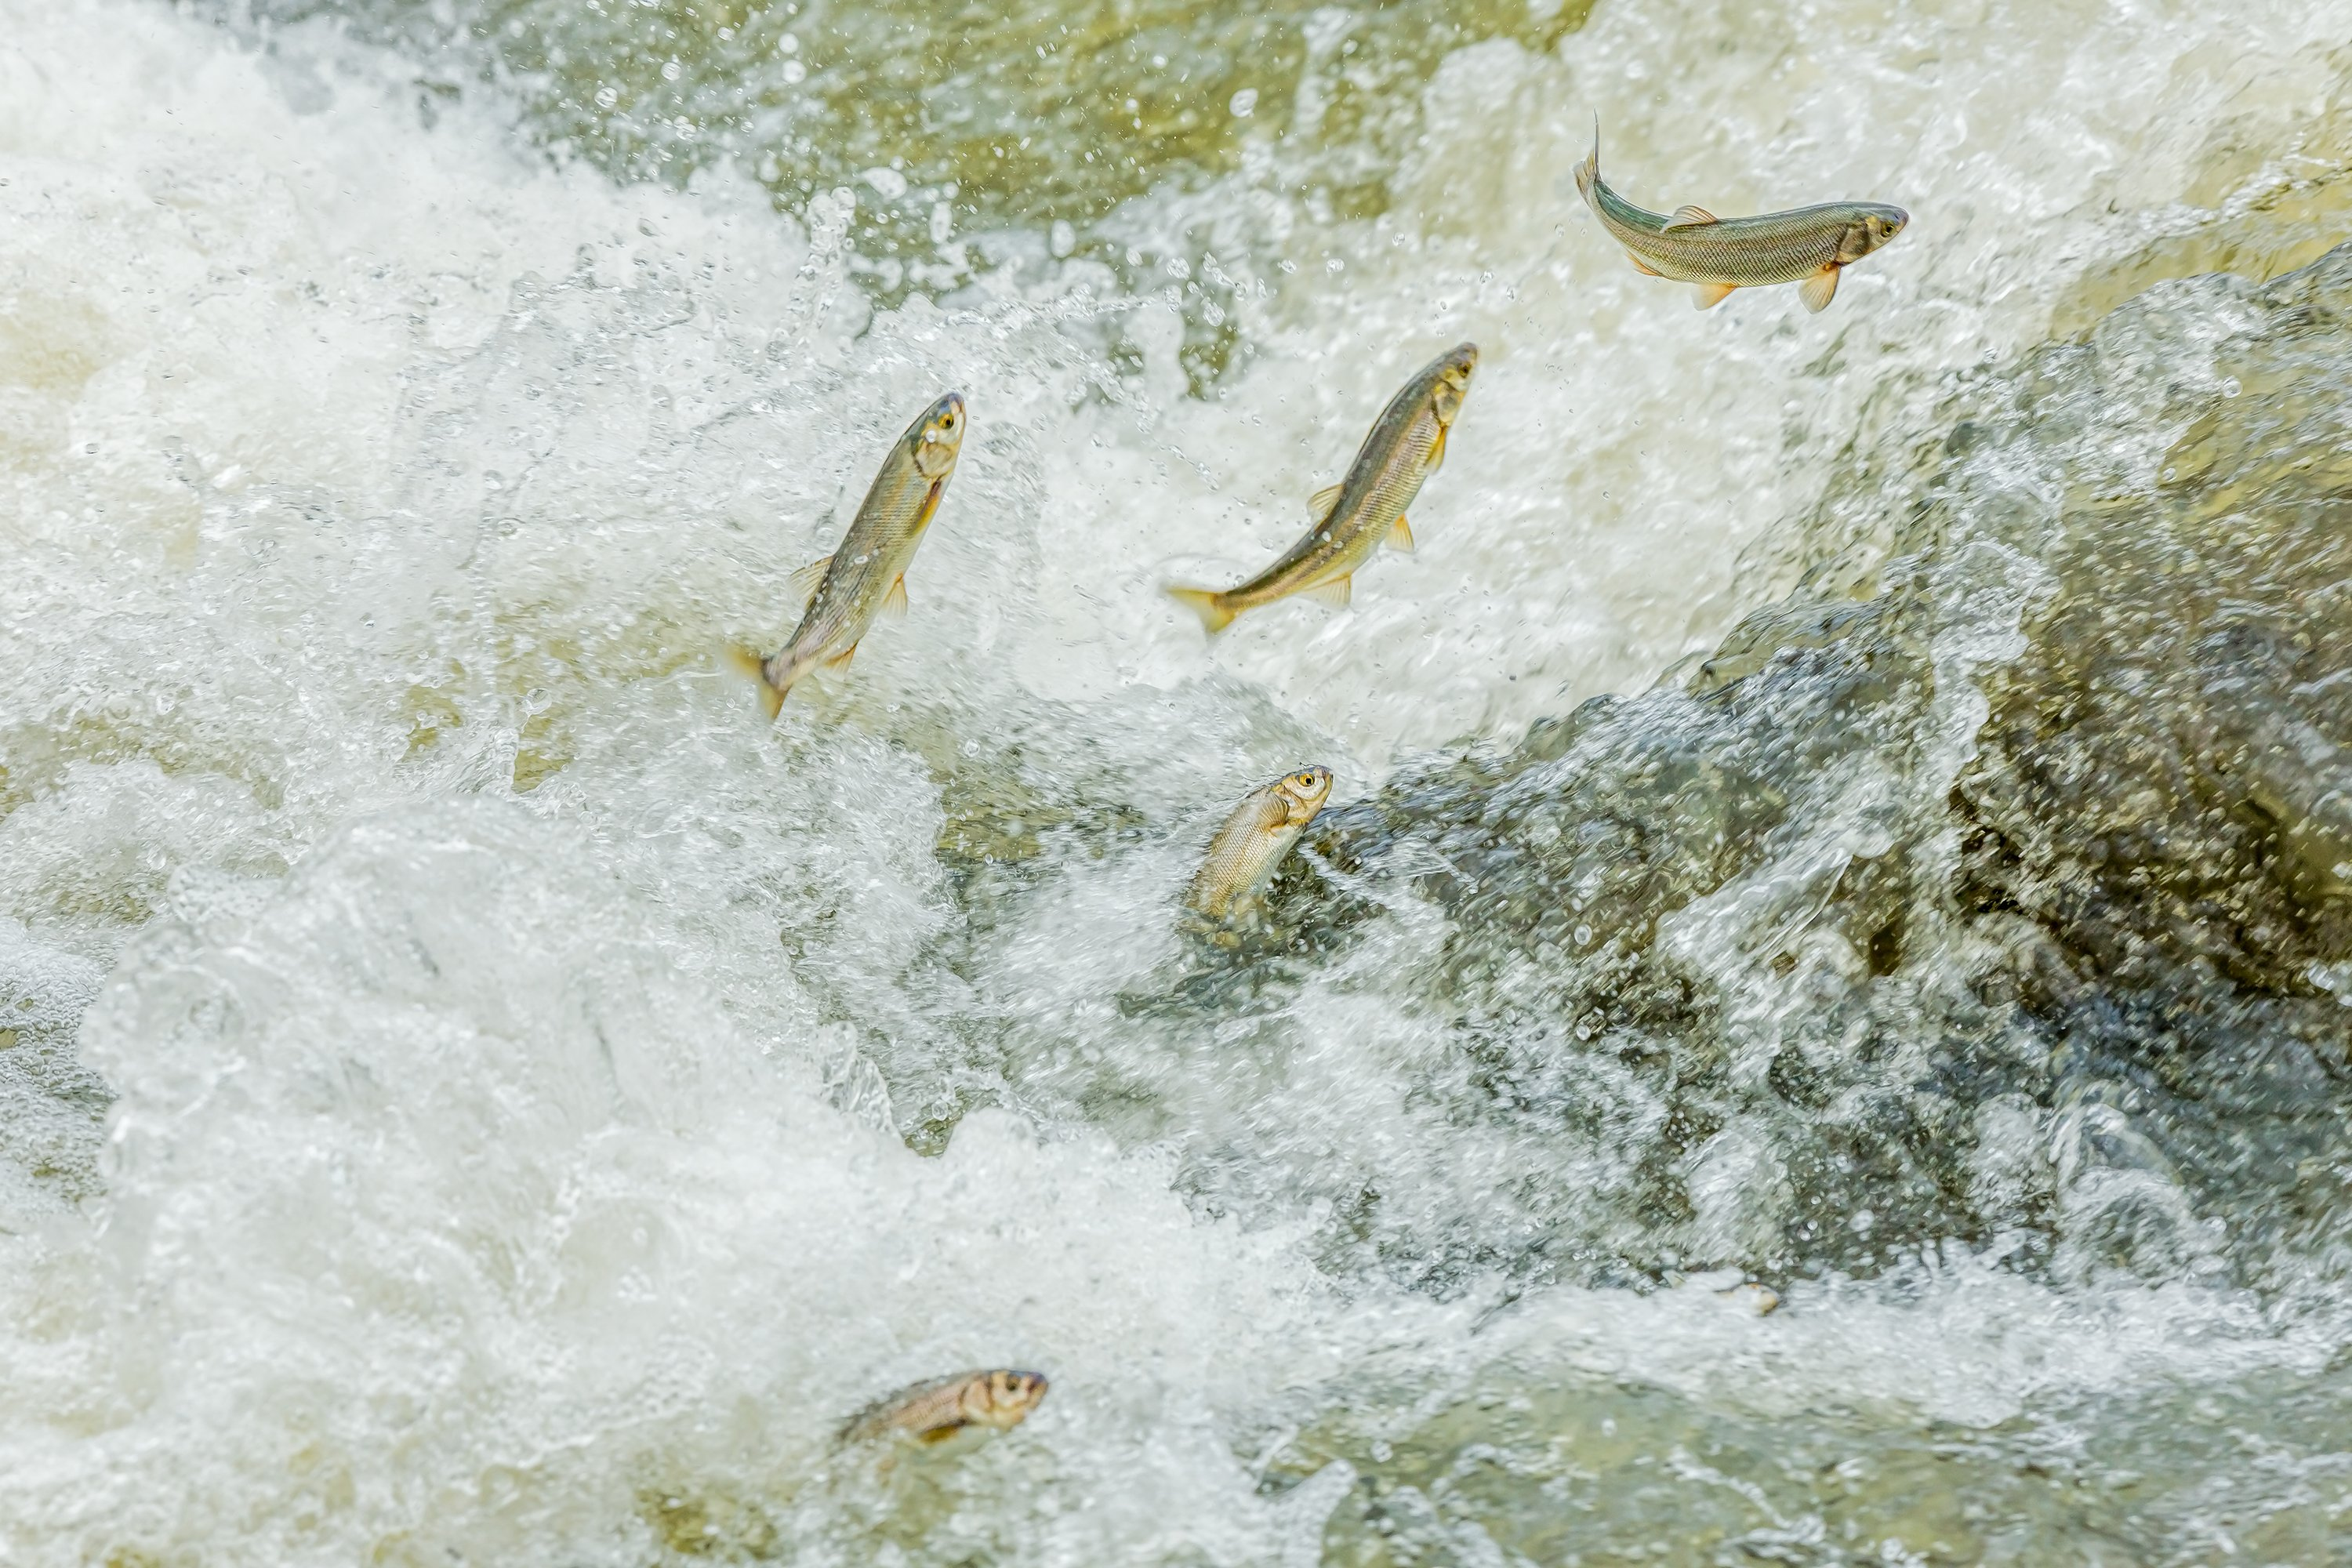 During May and June, the fish migrate from the lake to the rivers for spawning. (iStock Photo)